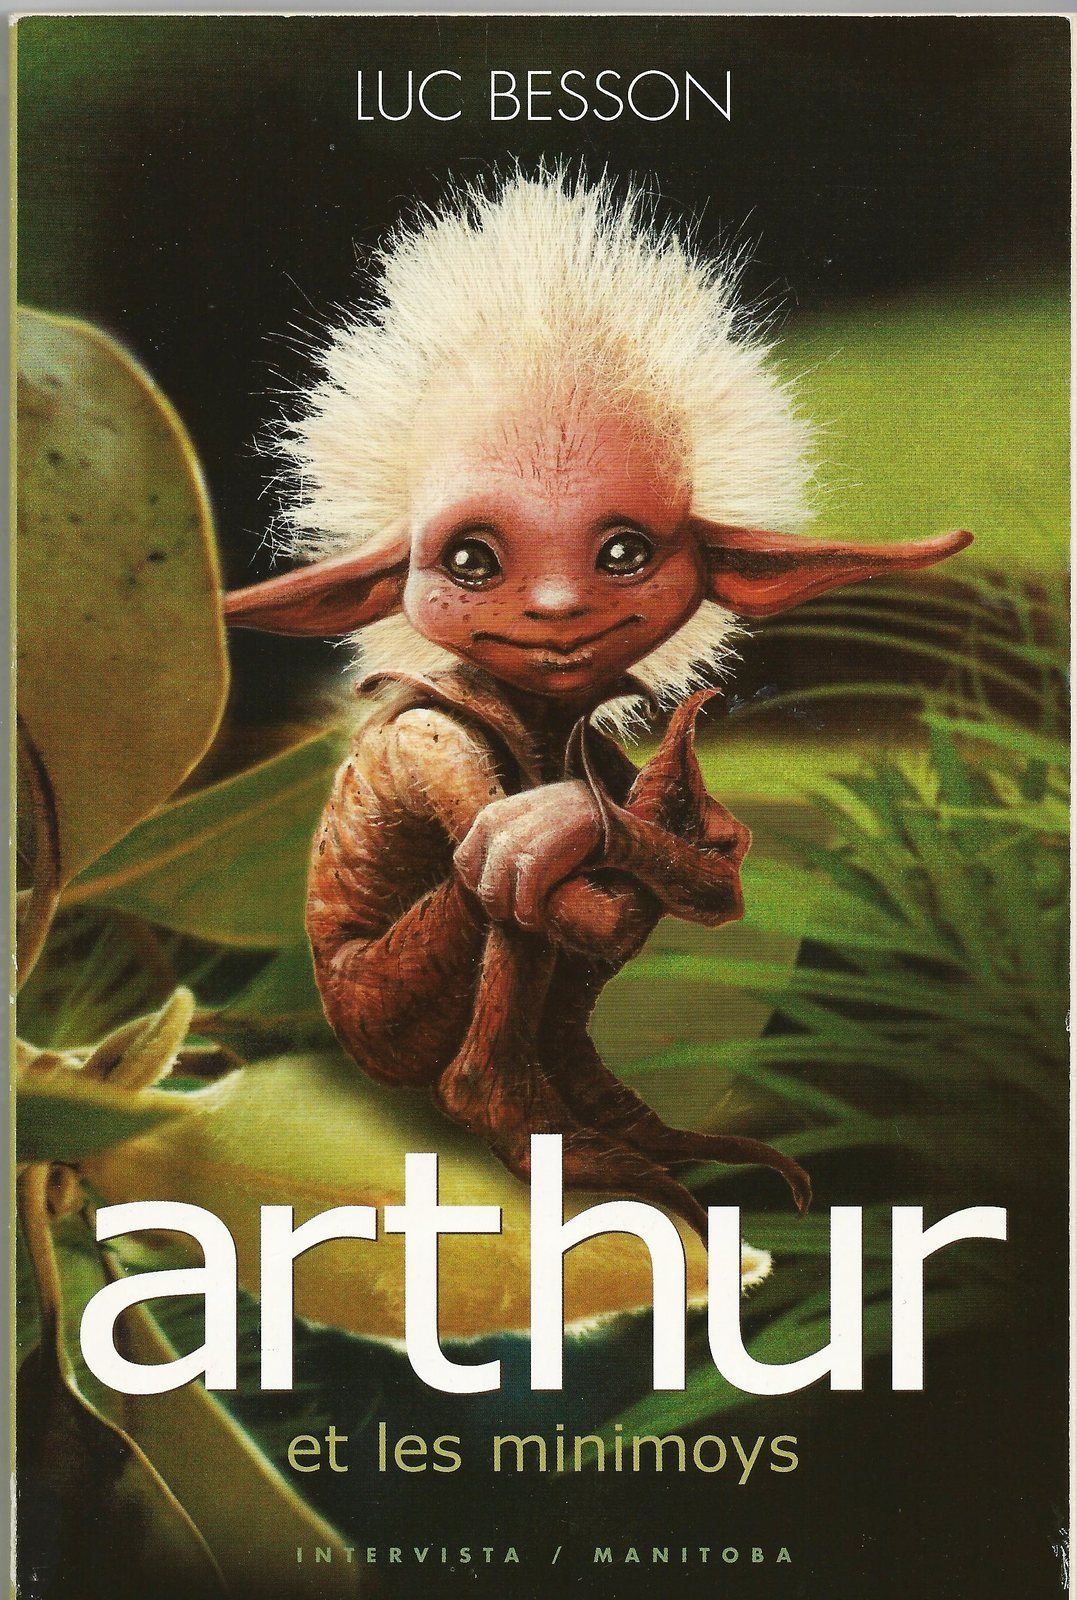 Arthur Et Les Minimoys 4 : arthur, minimoys, Arthur, MiniMoys, (Invisibles), Children, Books, French, Besson, Besson,, Invisibles,, Forest, Creatures